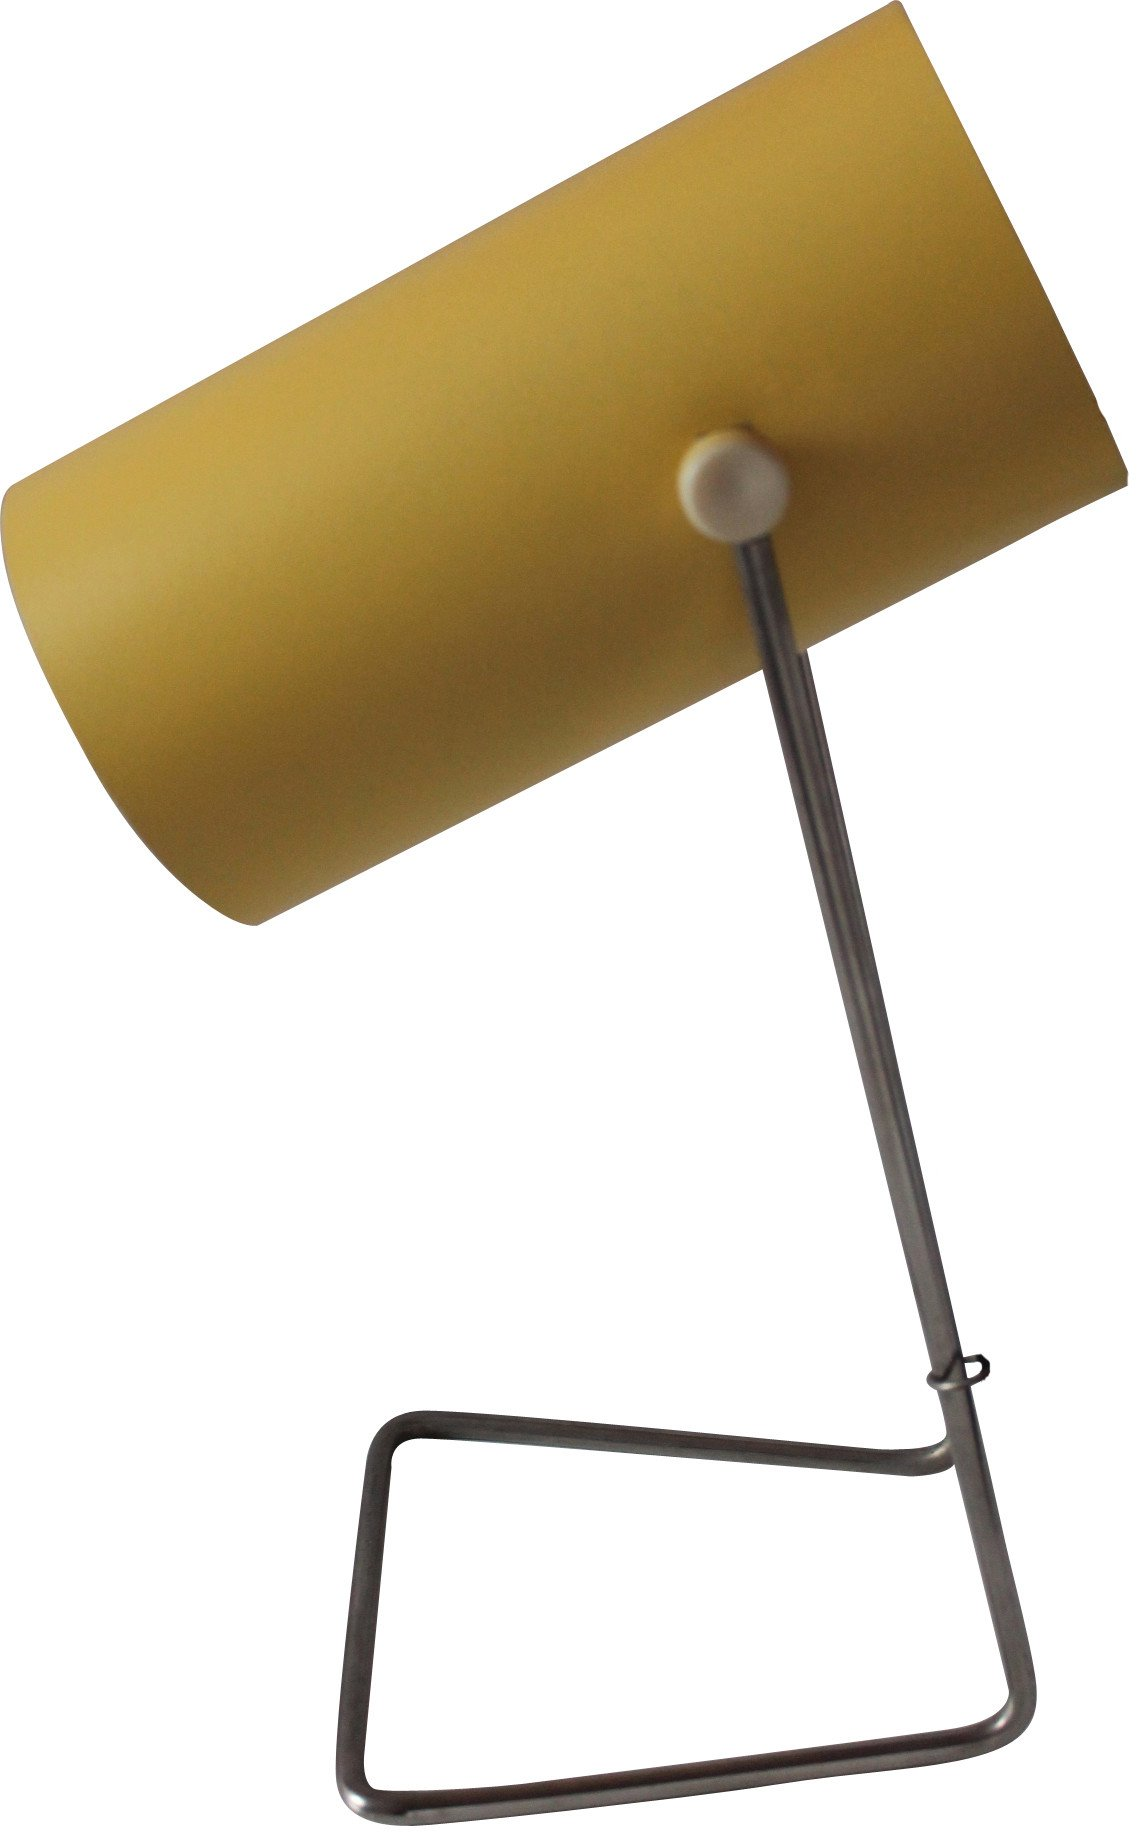 Desk Lamp, Zaos, Poland, 1970s